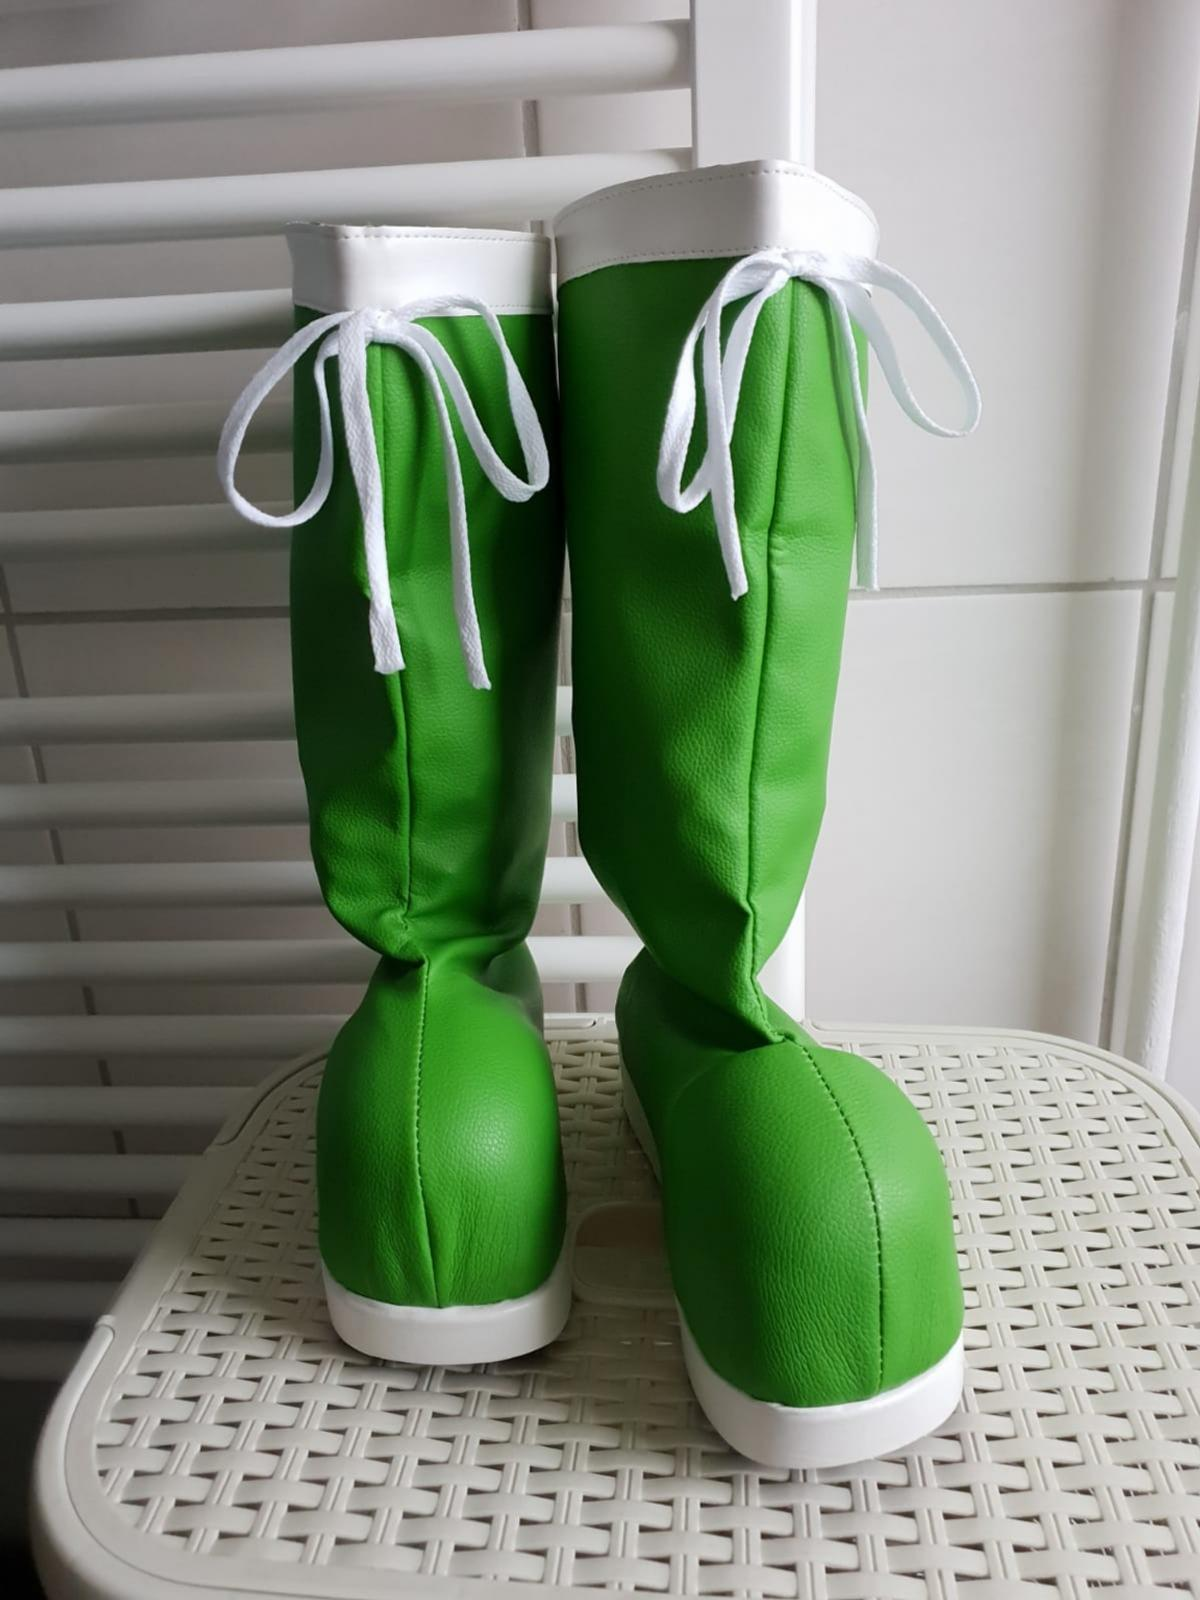 Date A Stiefel Cosplay Live Anime In 31137 Yoshino Kcu3lF1JT